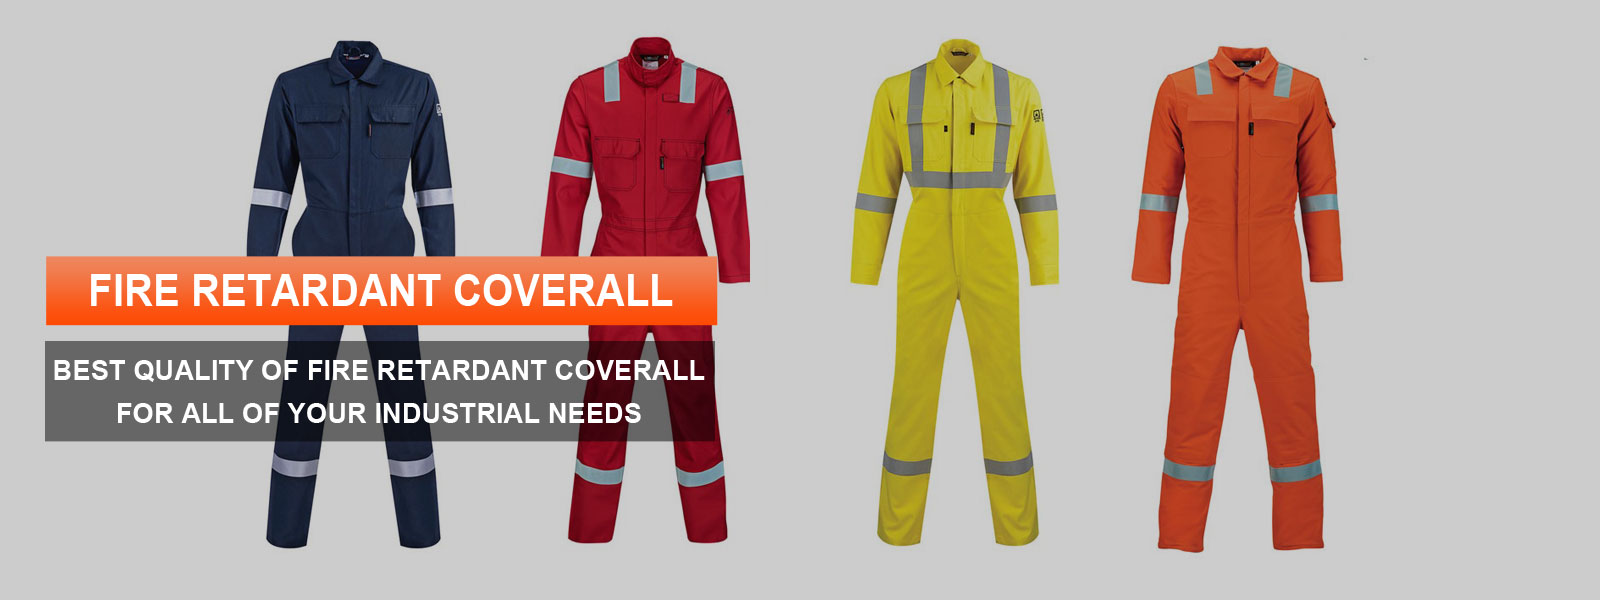 Fire Retardant Coverall Manufacturers in Germany